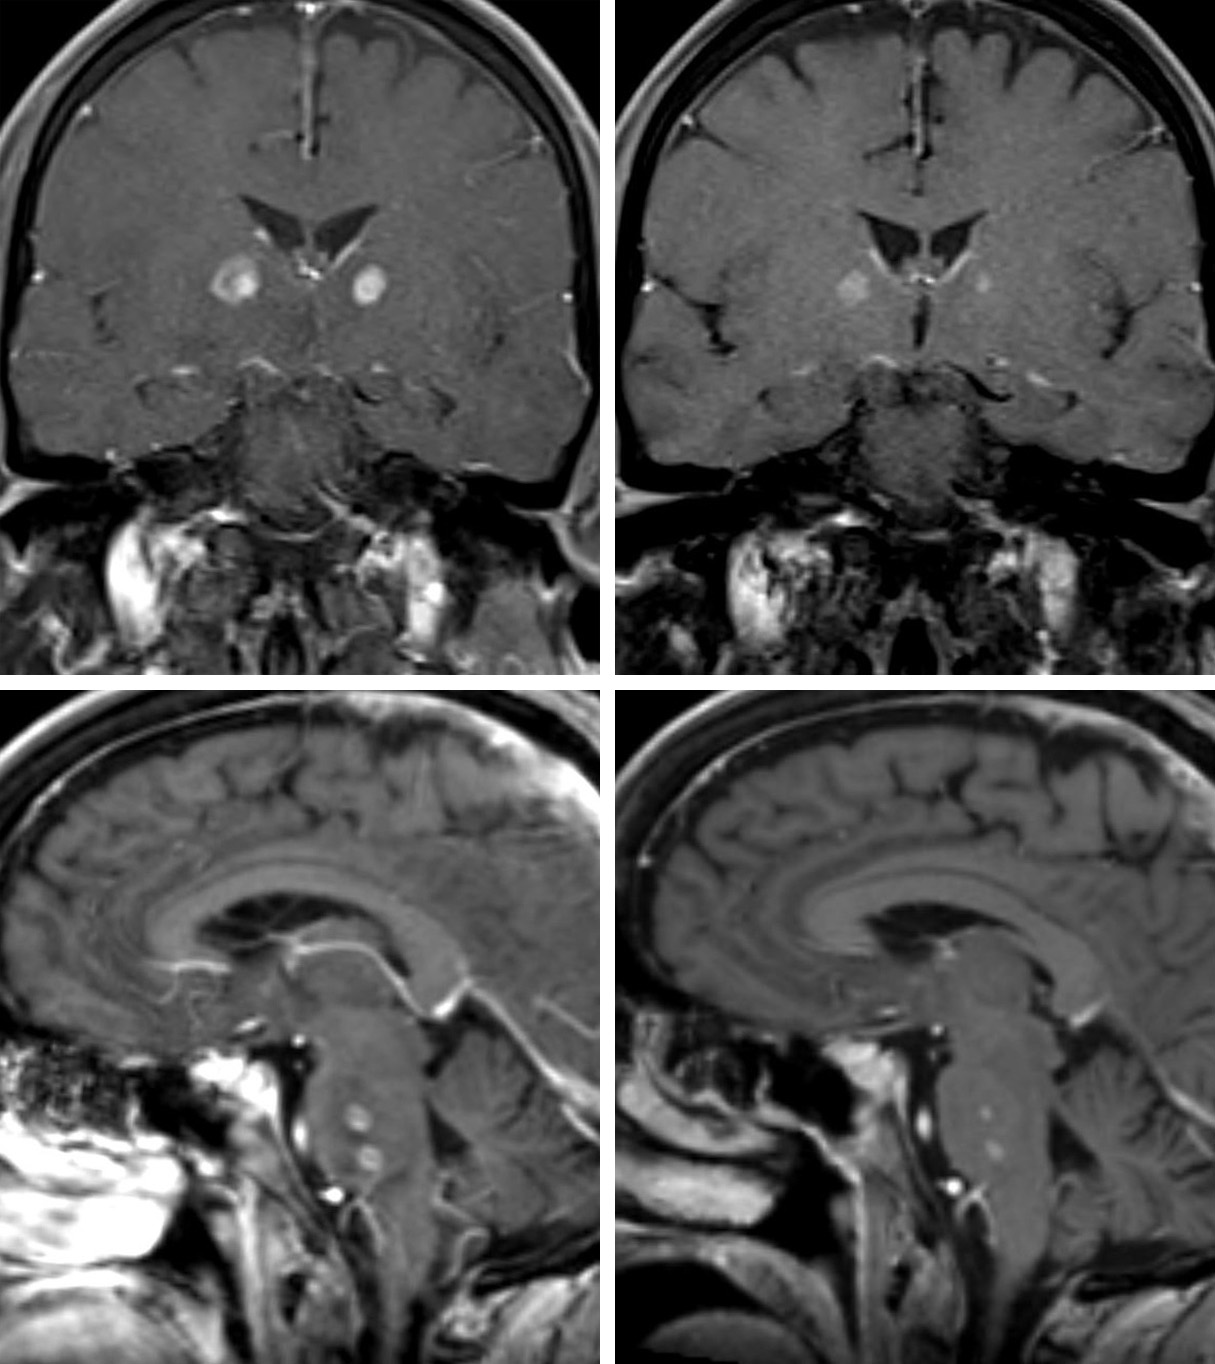 Figure 6: Coronal (top) and sagittal (bottom) T1 post-contrast imaging demonstrates enhancement in the rim of the toxoplasmosis lesions (left), improved after 2 months of antiparasitic therapy (right).